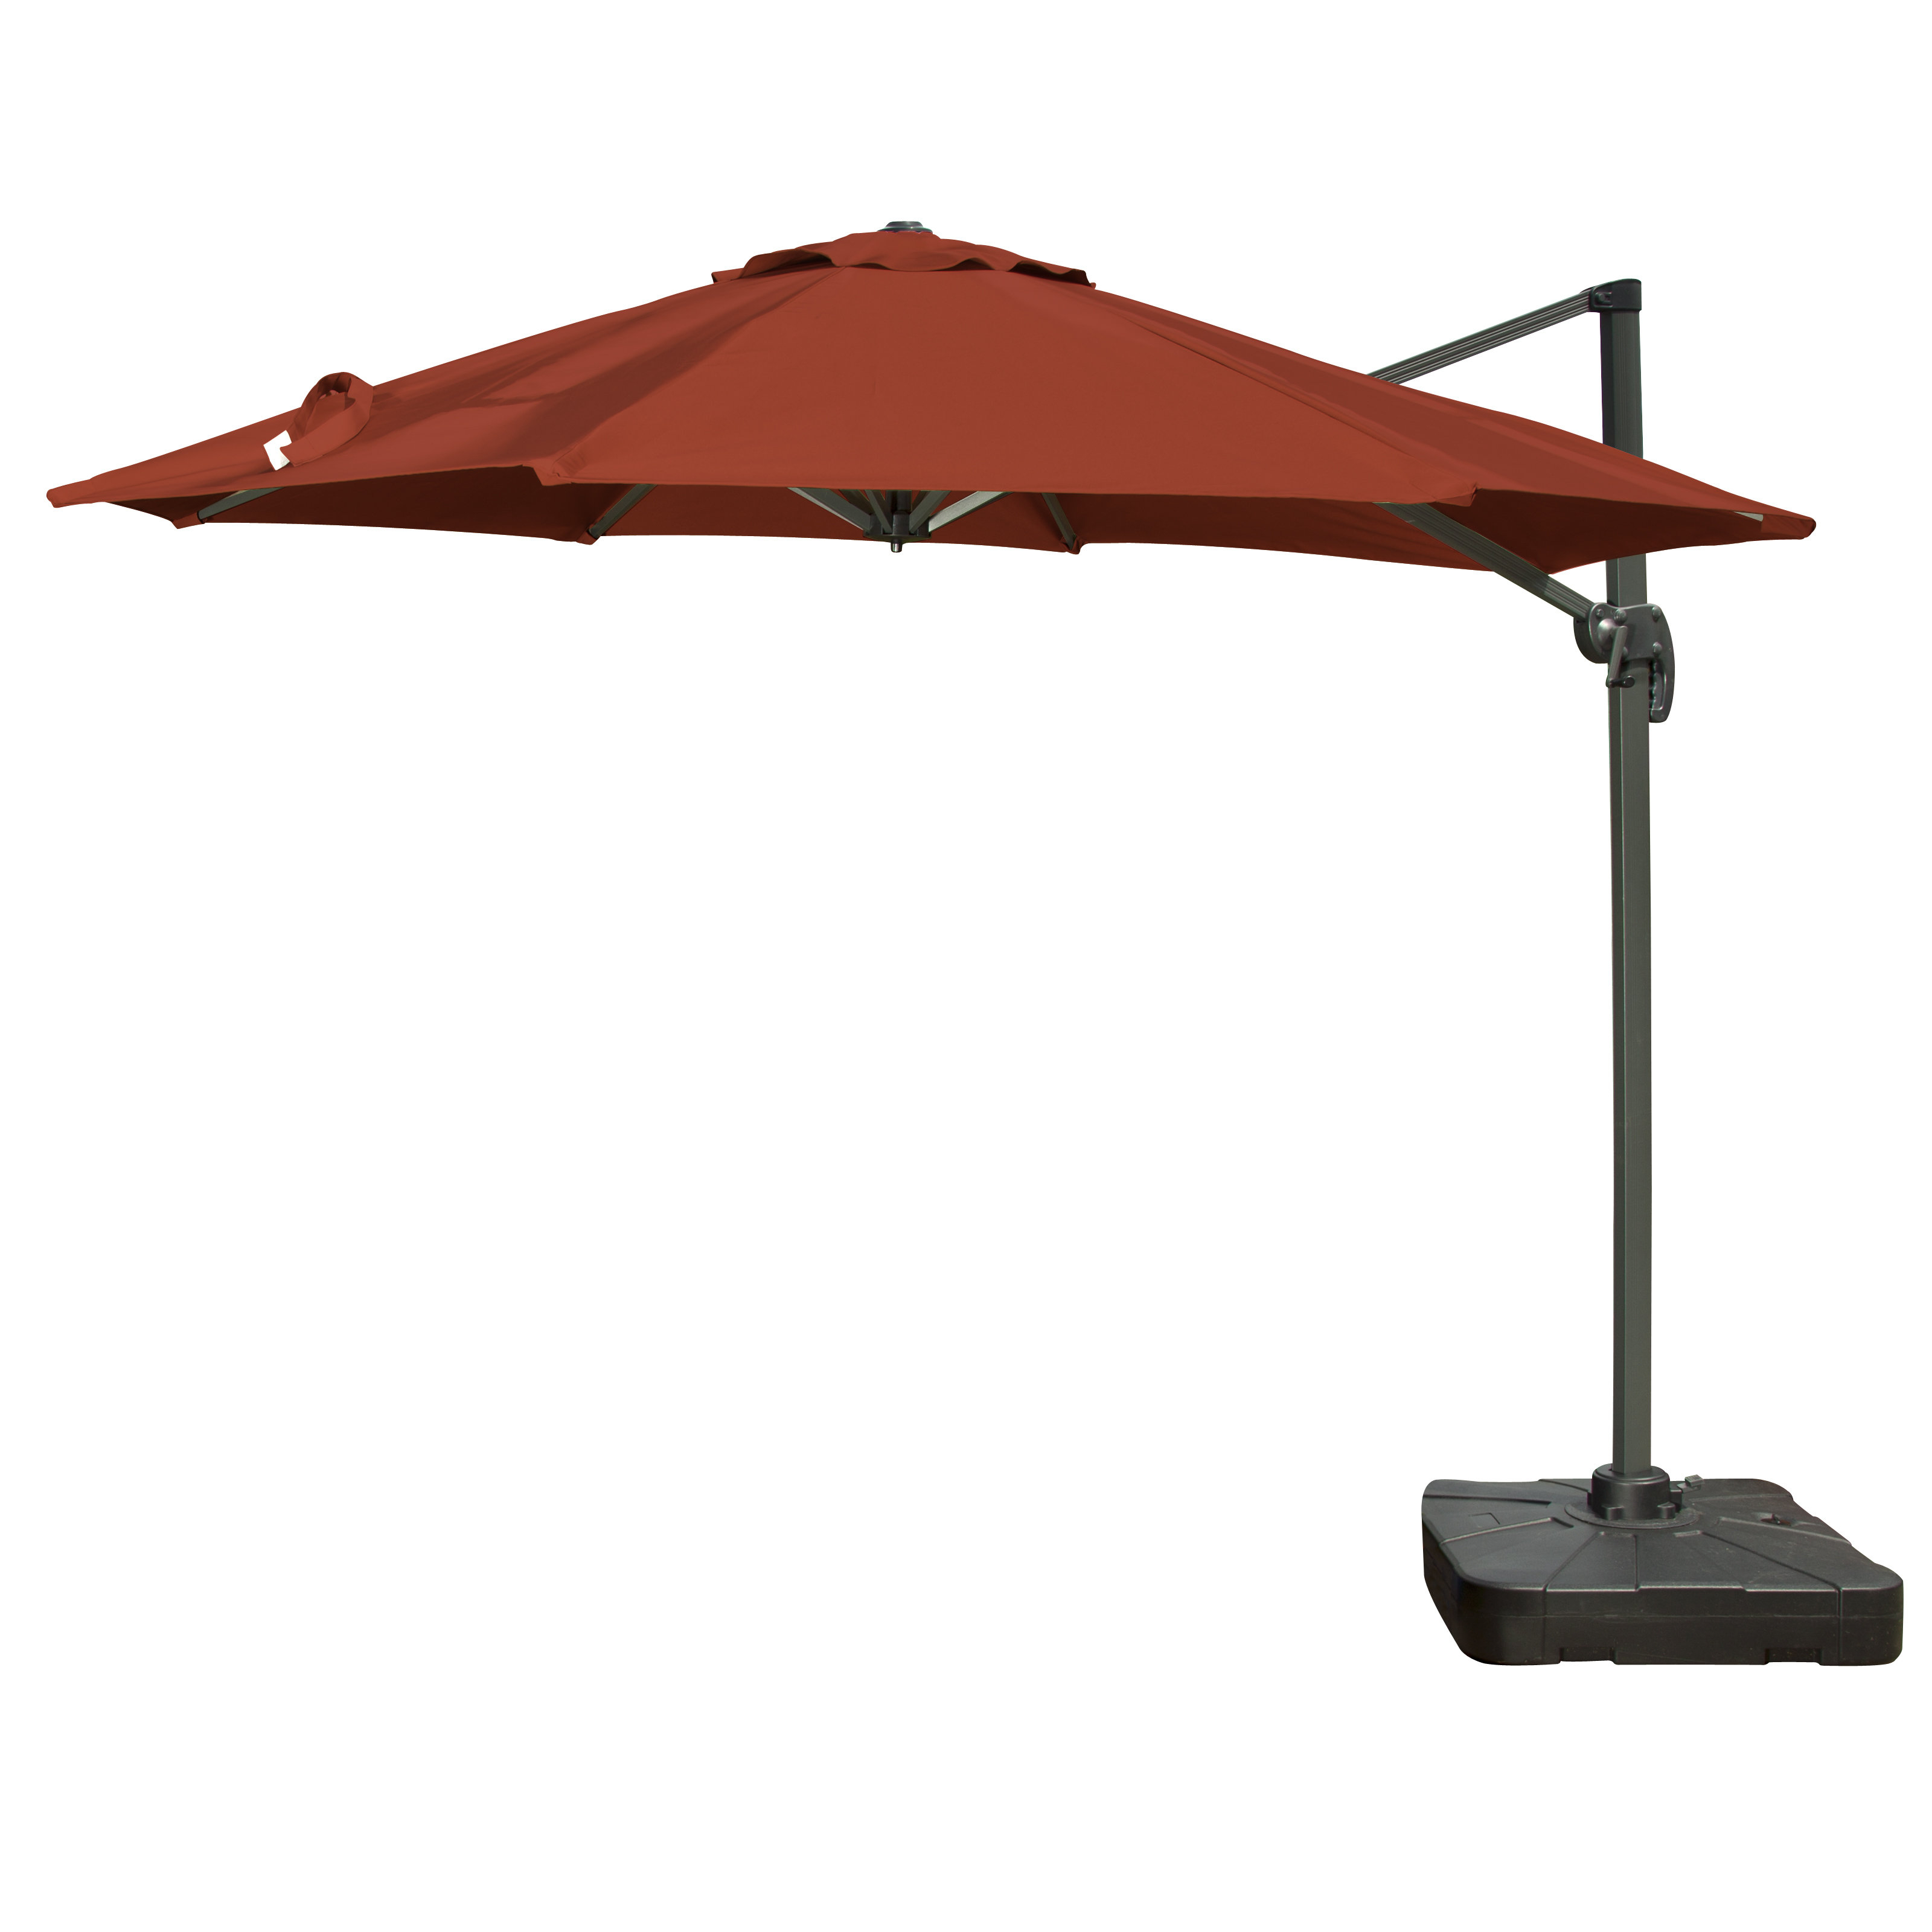 Newest Alms 9.10' Cantilever Umbrella With Olen Cantilever Umbrellas (Gallery 3 of 20)